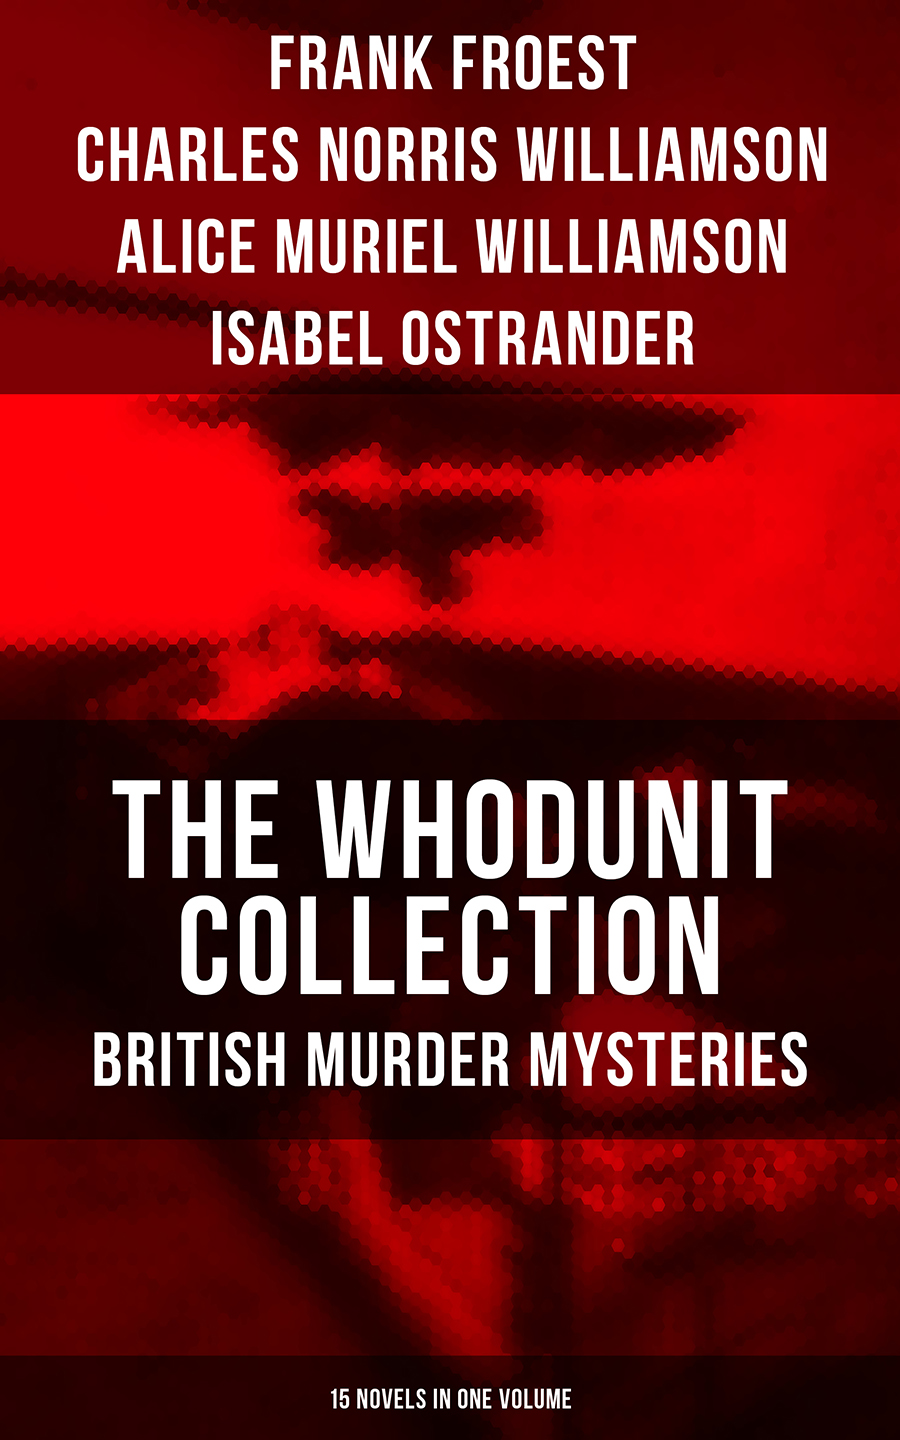 Charles Norris Williamson THE WHODUNIT COLLECTION: British Murder Mysteries (15 Novels in One Volume) цены онлайн